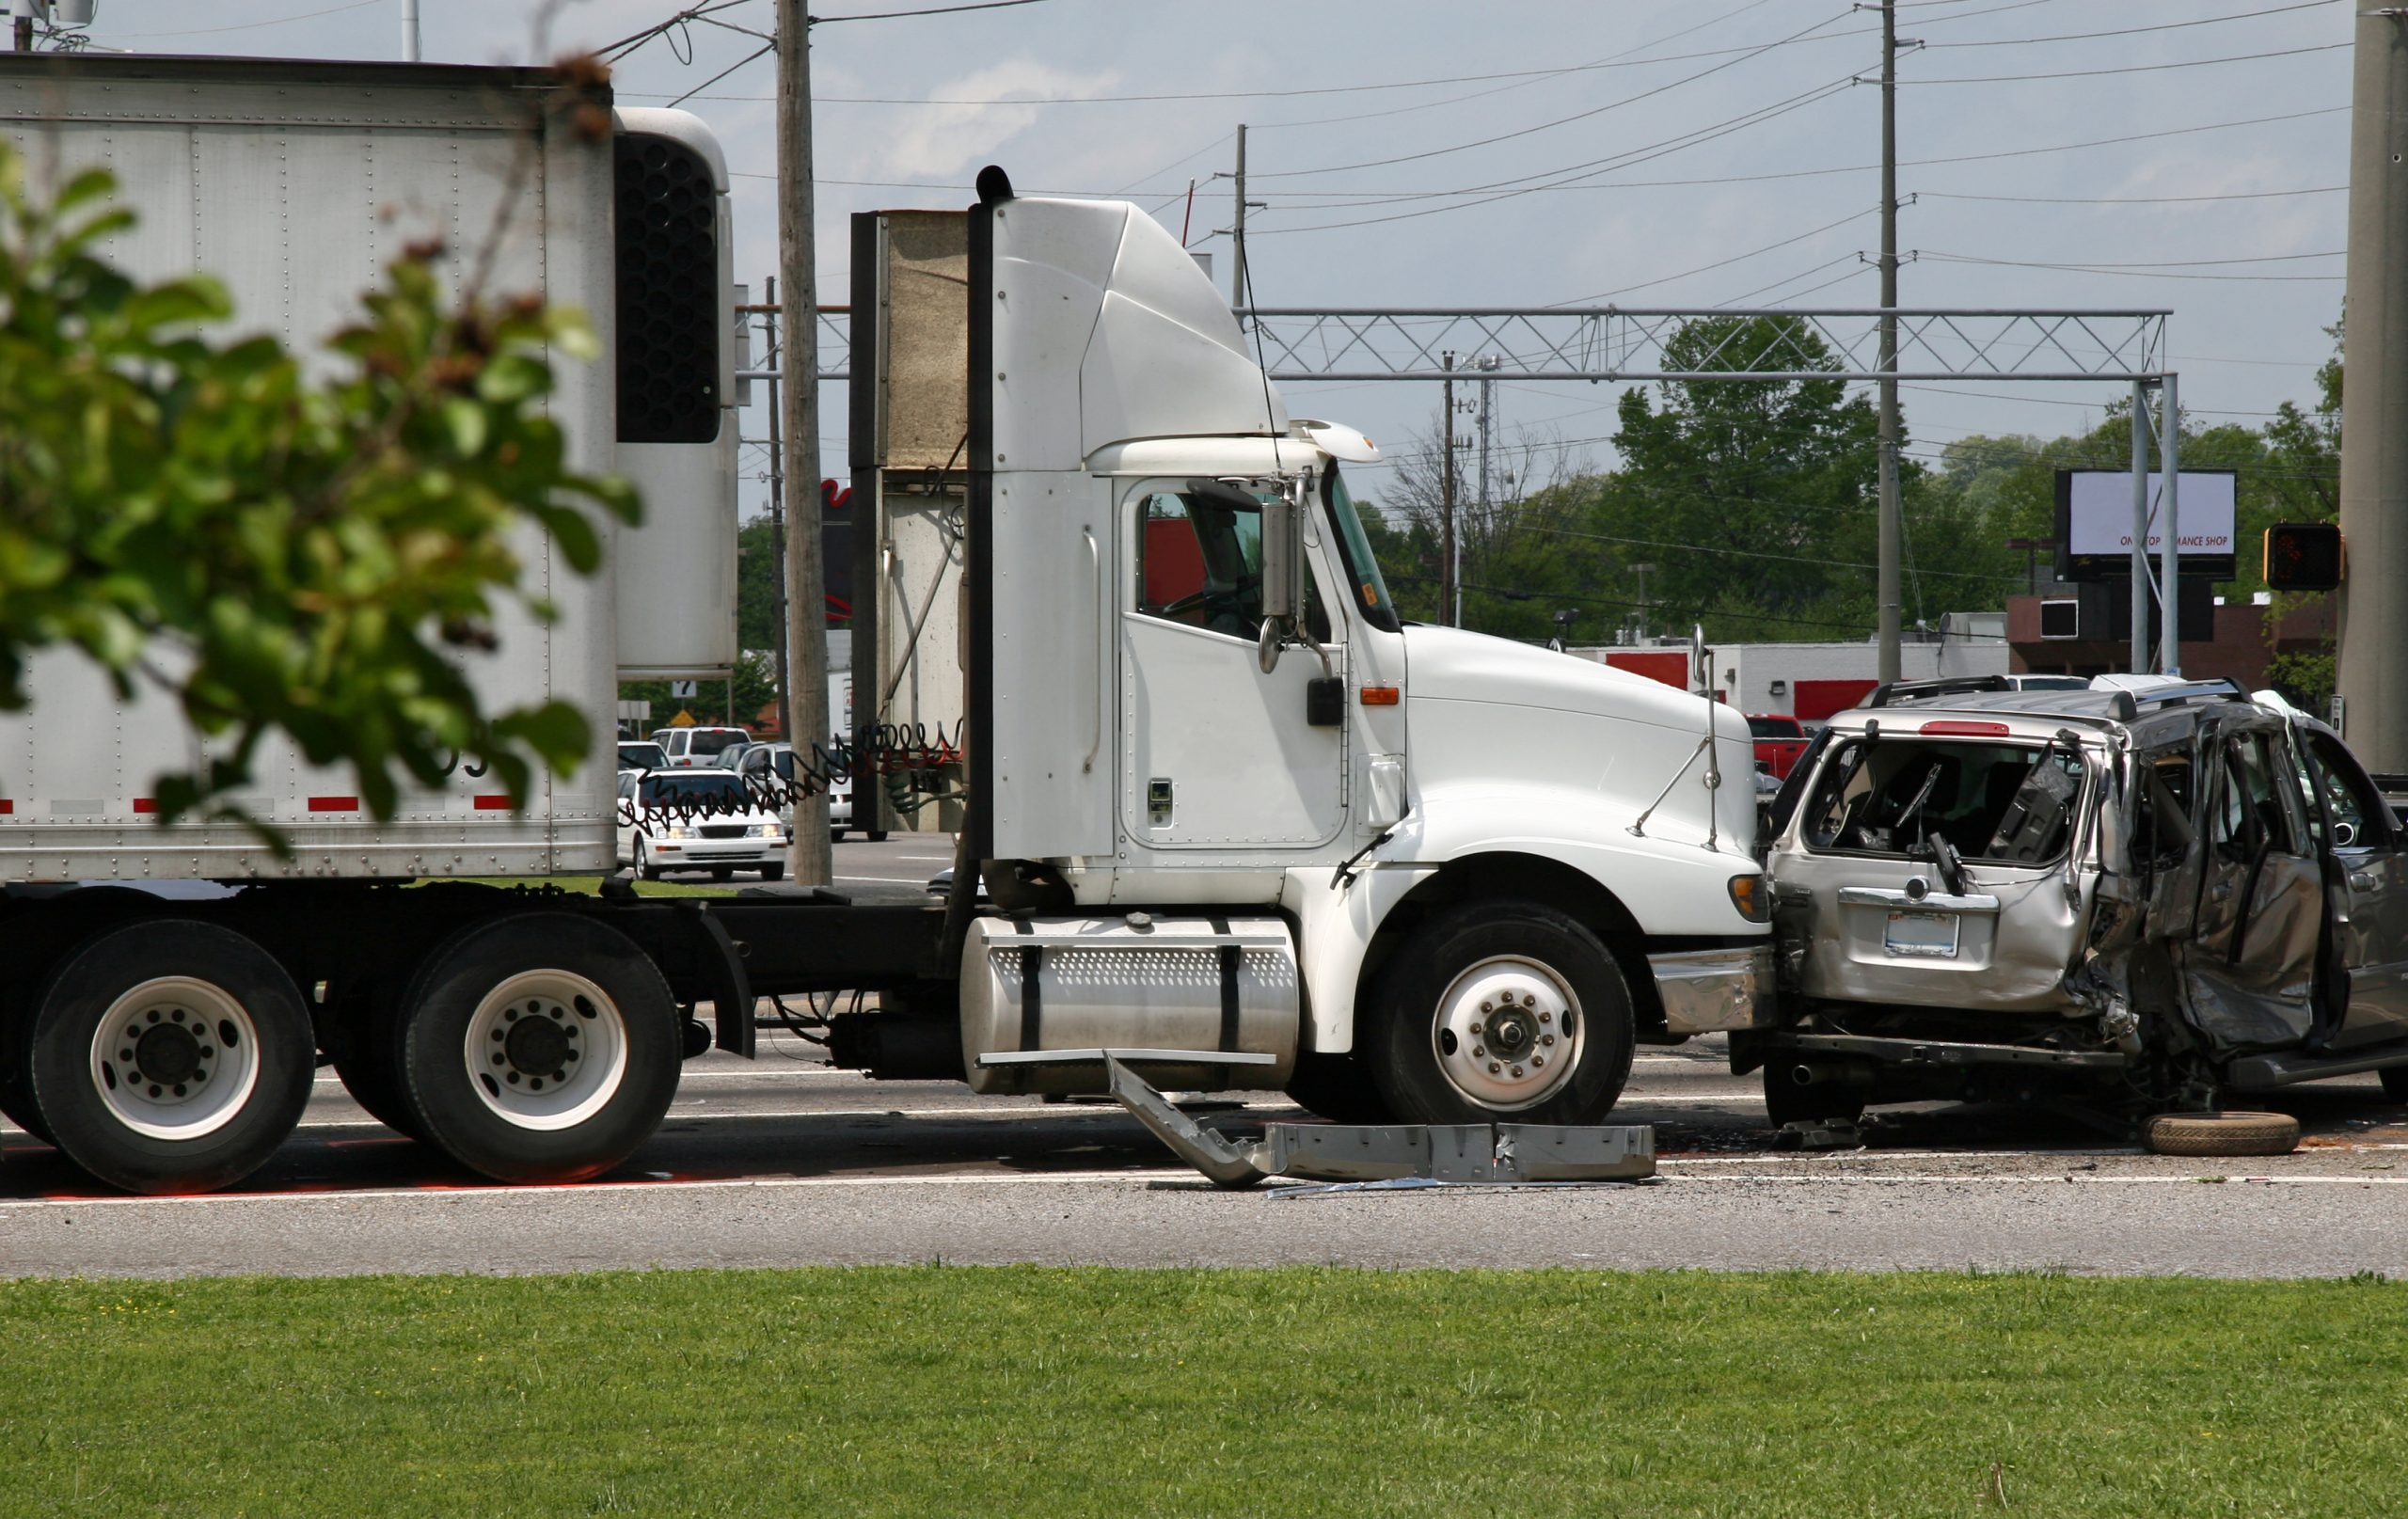 A semi-truck accident on the road in Chattanooga.